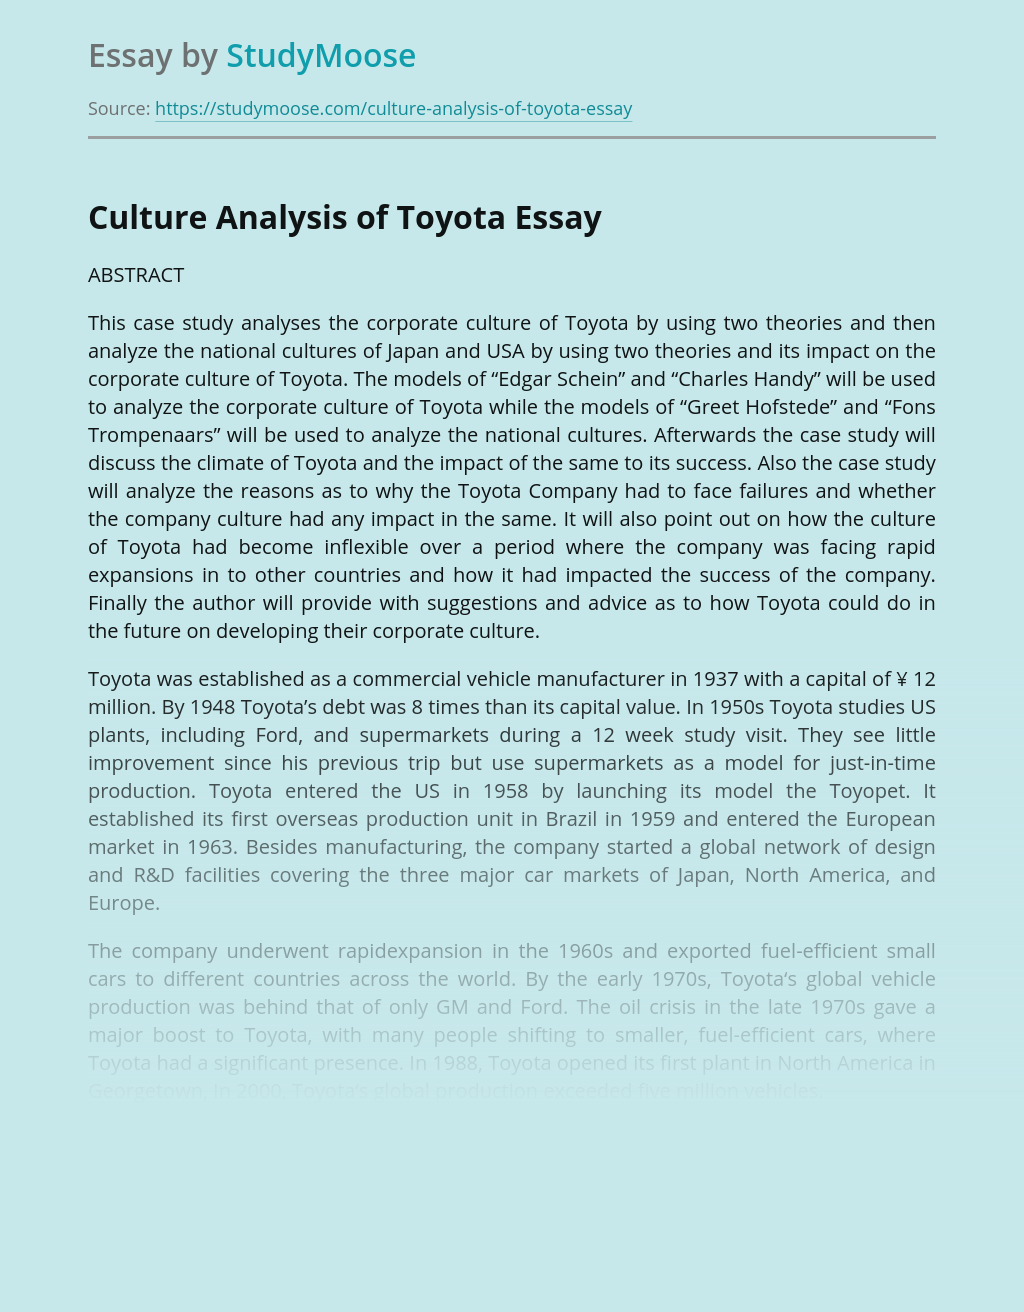 Culture Analysis of Toyota